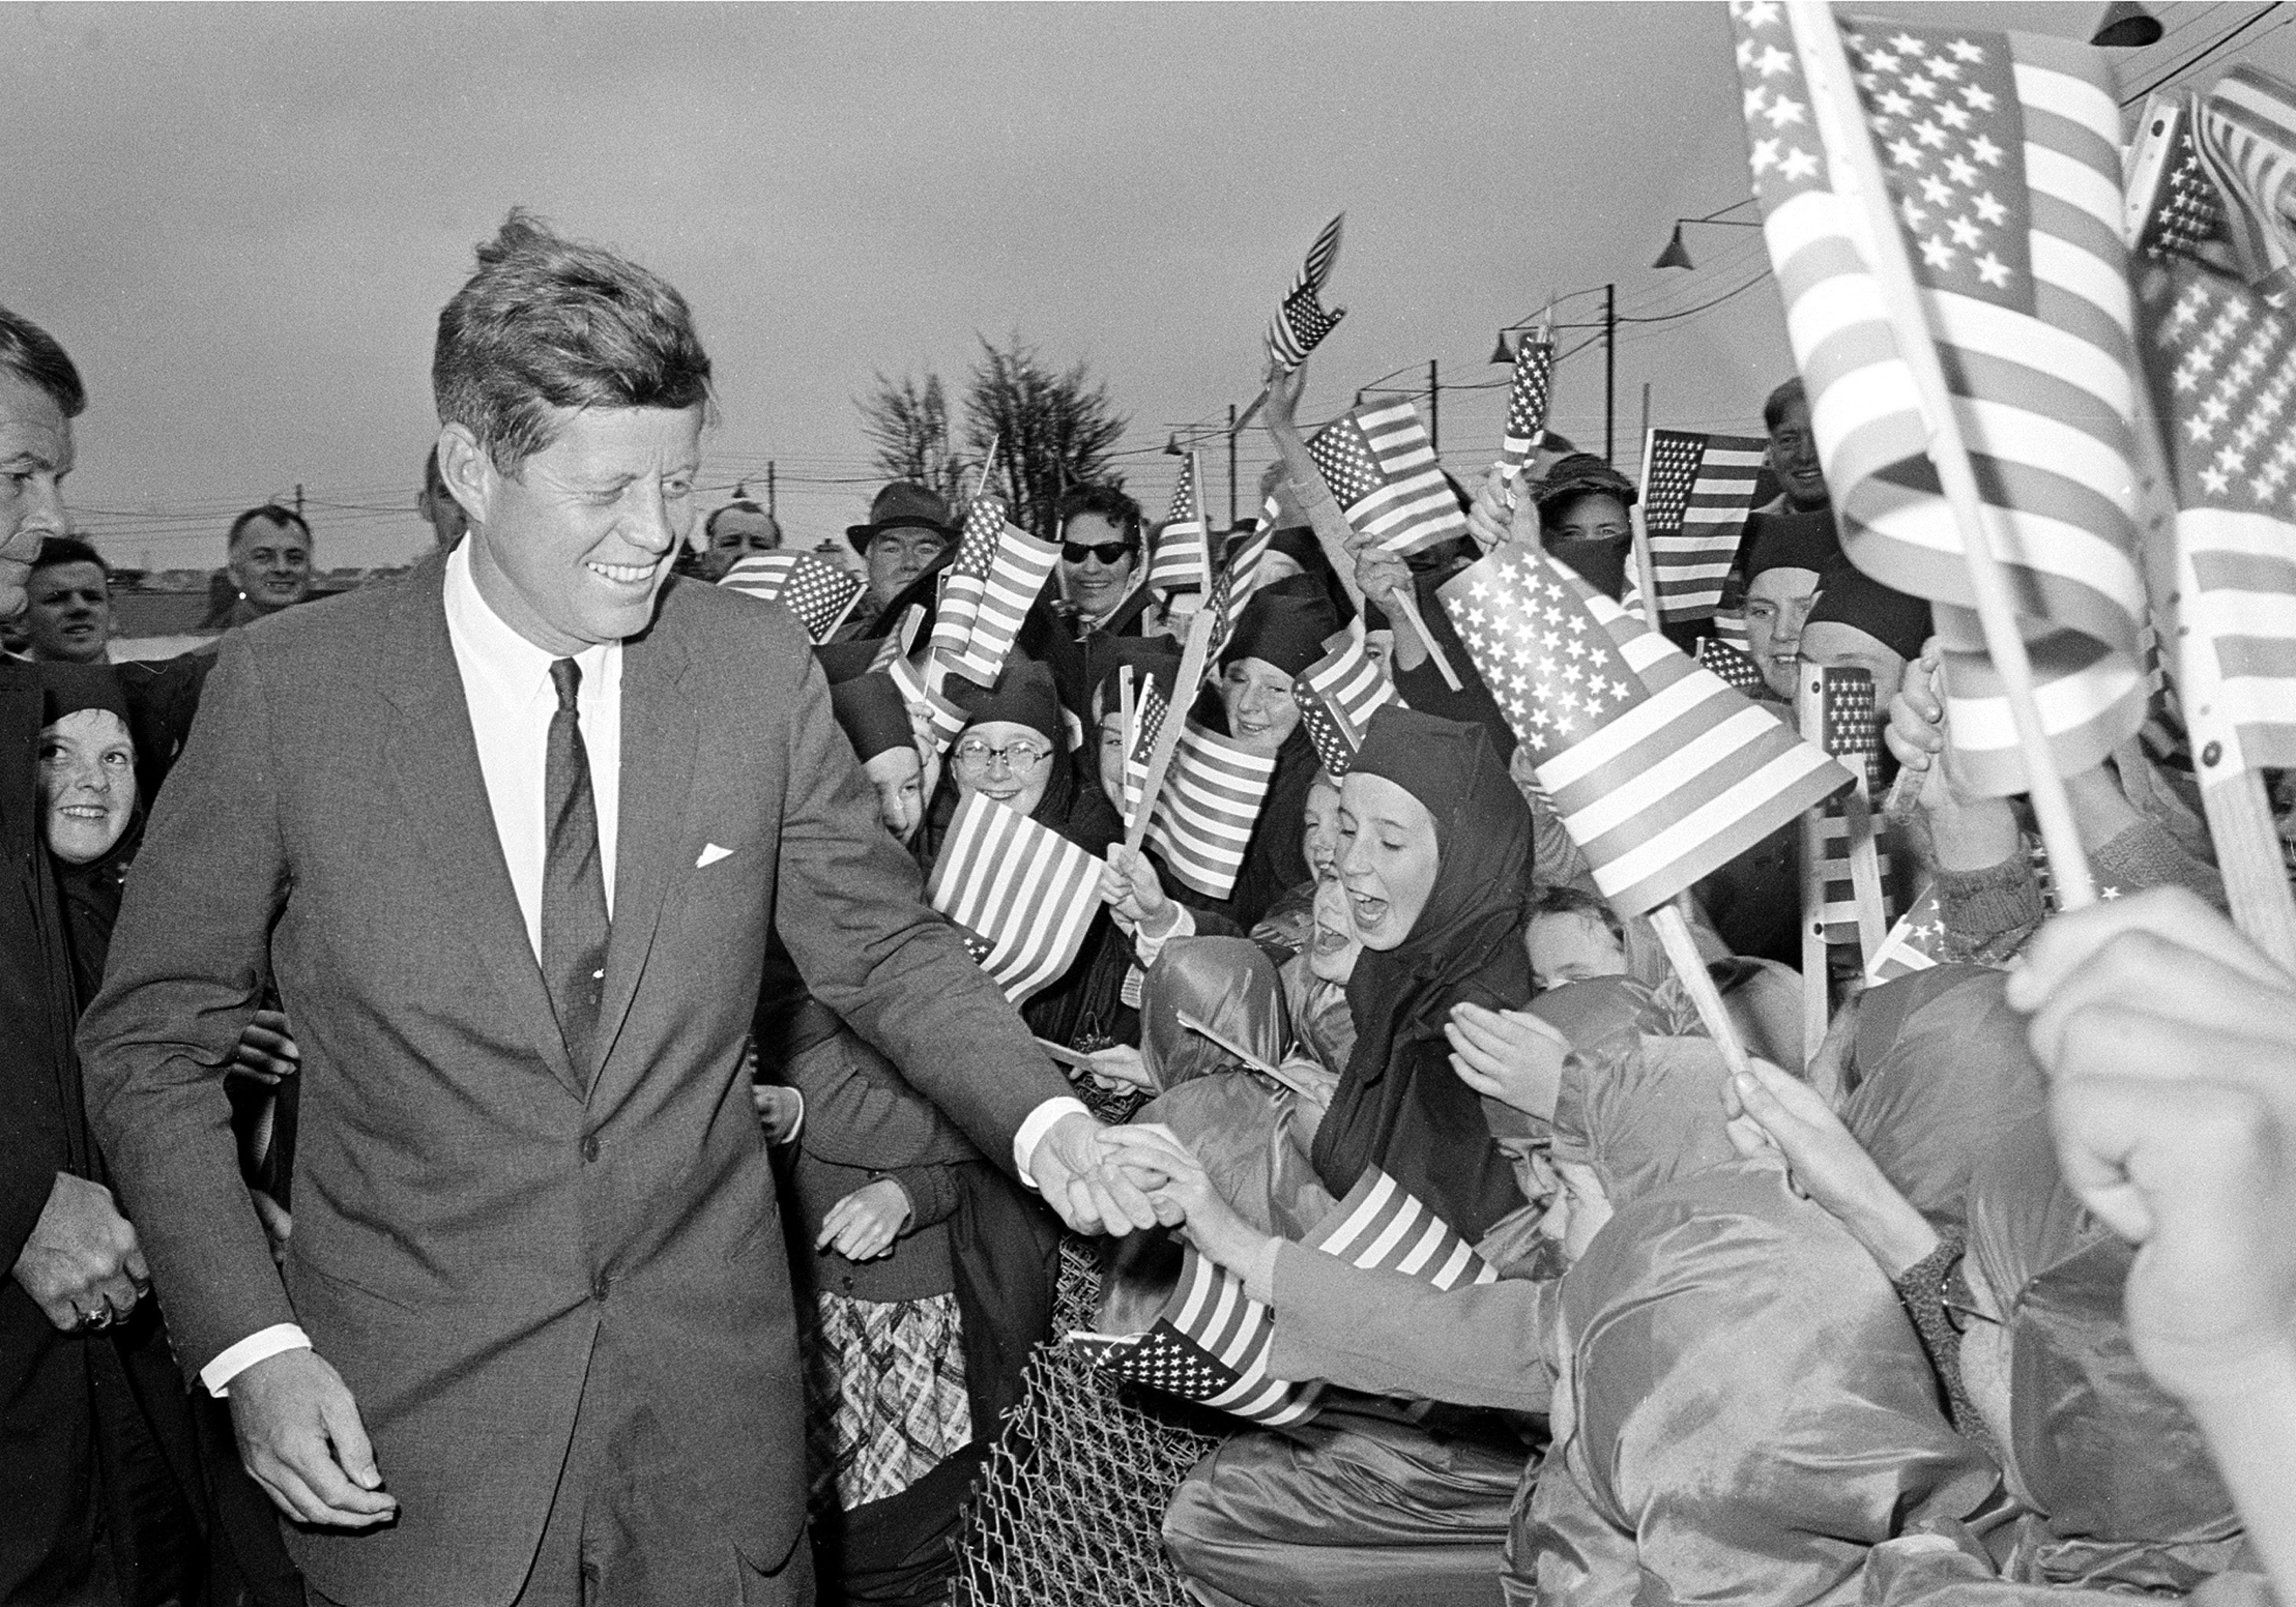 <div class='meta'><div class='origin-logo' data-origin='none'></div><span class='caption-text' data-credit='ASSOCIATED PRESS'>Kennedy is greeted by an enthusiastic crowd of children and nuns from the Convent of Mercy, as he arrives from Dublin at Galway's sports ground, Ireland, June 29, 1963.</span></div>